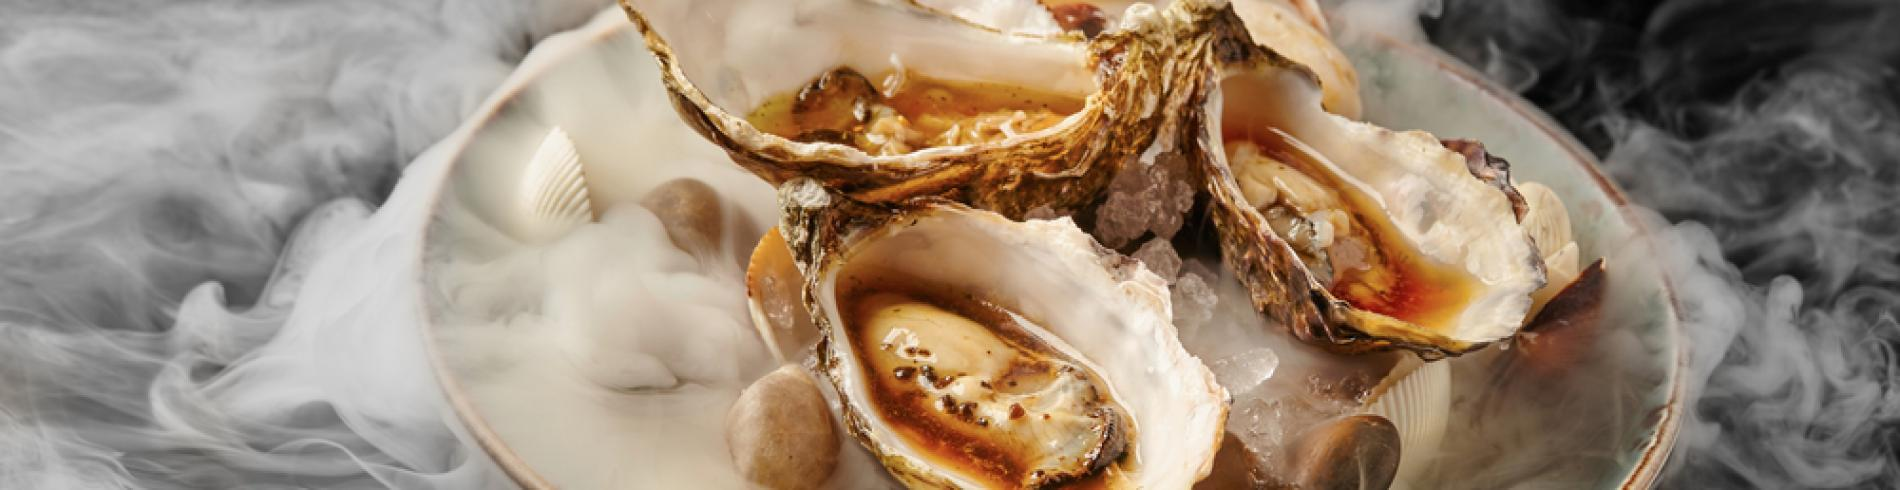 Fine dinning oysters